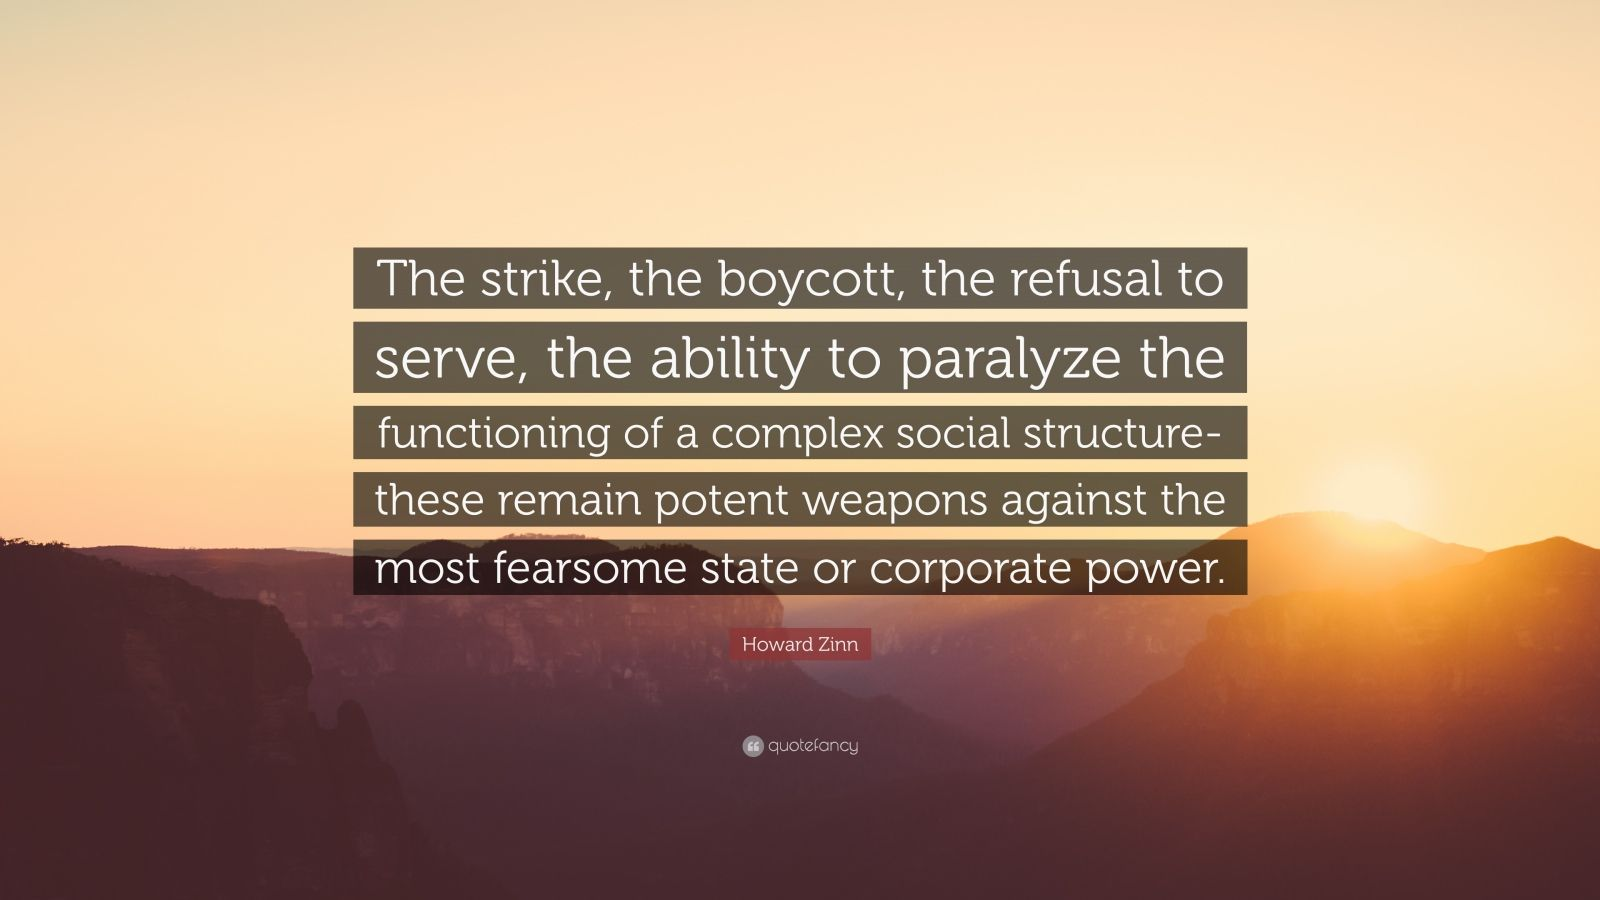 """Howard Zinn Quote: """"The strike, the boycott, the refusal to serve, the ability to paralyze the functioning of a complex social structure-these remain potent weapons against the most fearsome state or corporate power."""""""